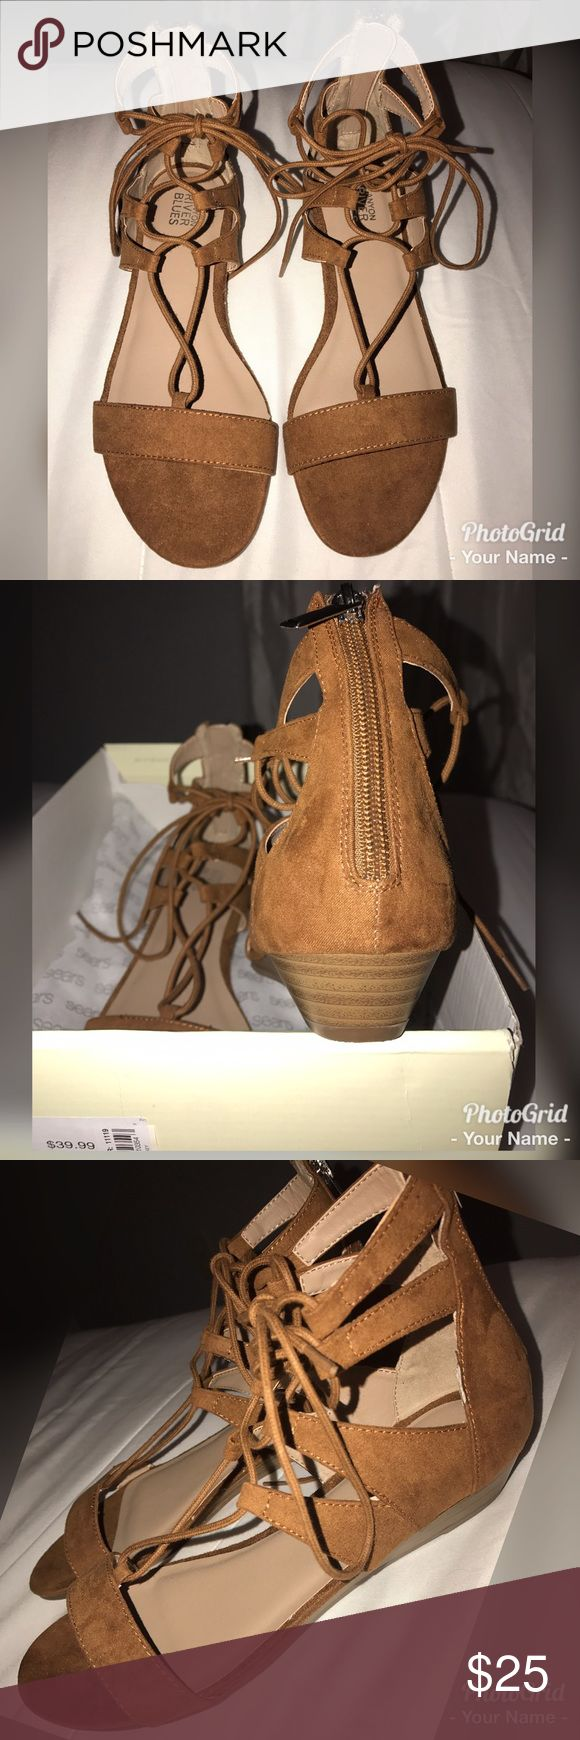 Suede whiskey shoes Beautiful comfortable shoes! Brand new never worn, this color goes good with anything you wear, tie up Style to make them stand out w/ a small heel that will have you feeling sexy in these ✨ Shoes Sandals